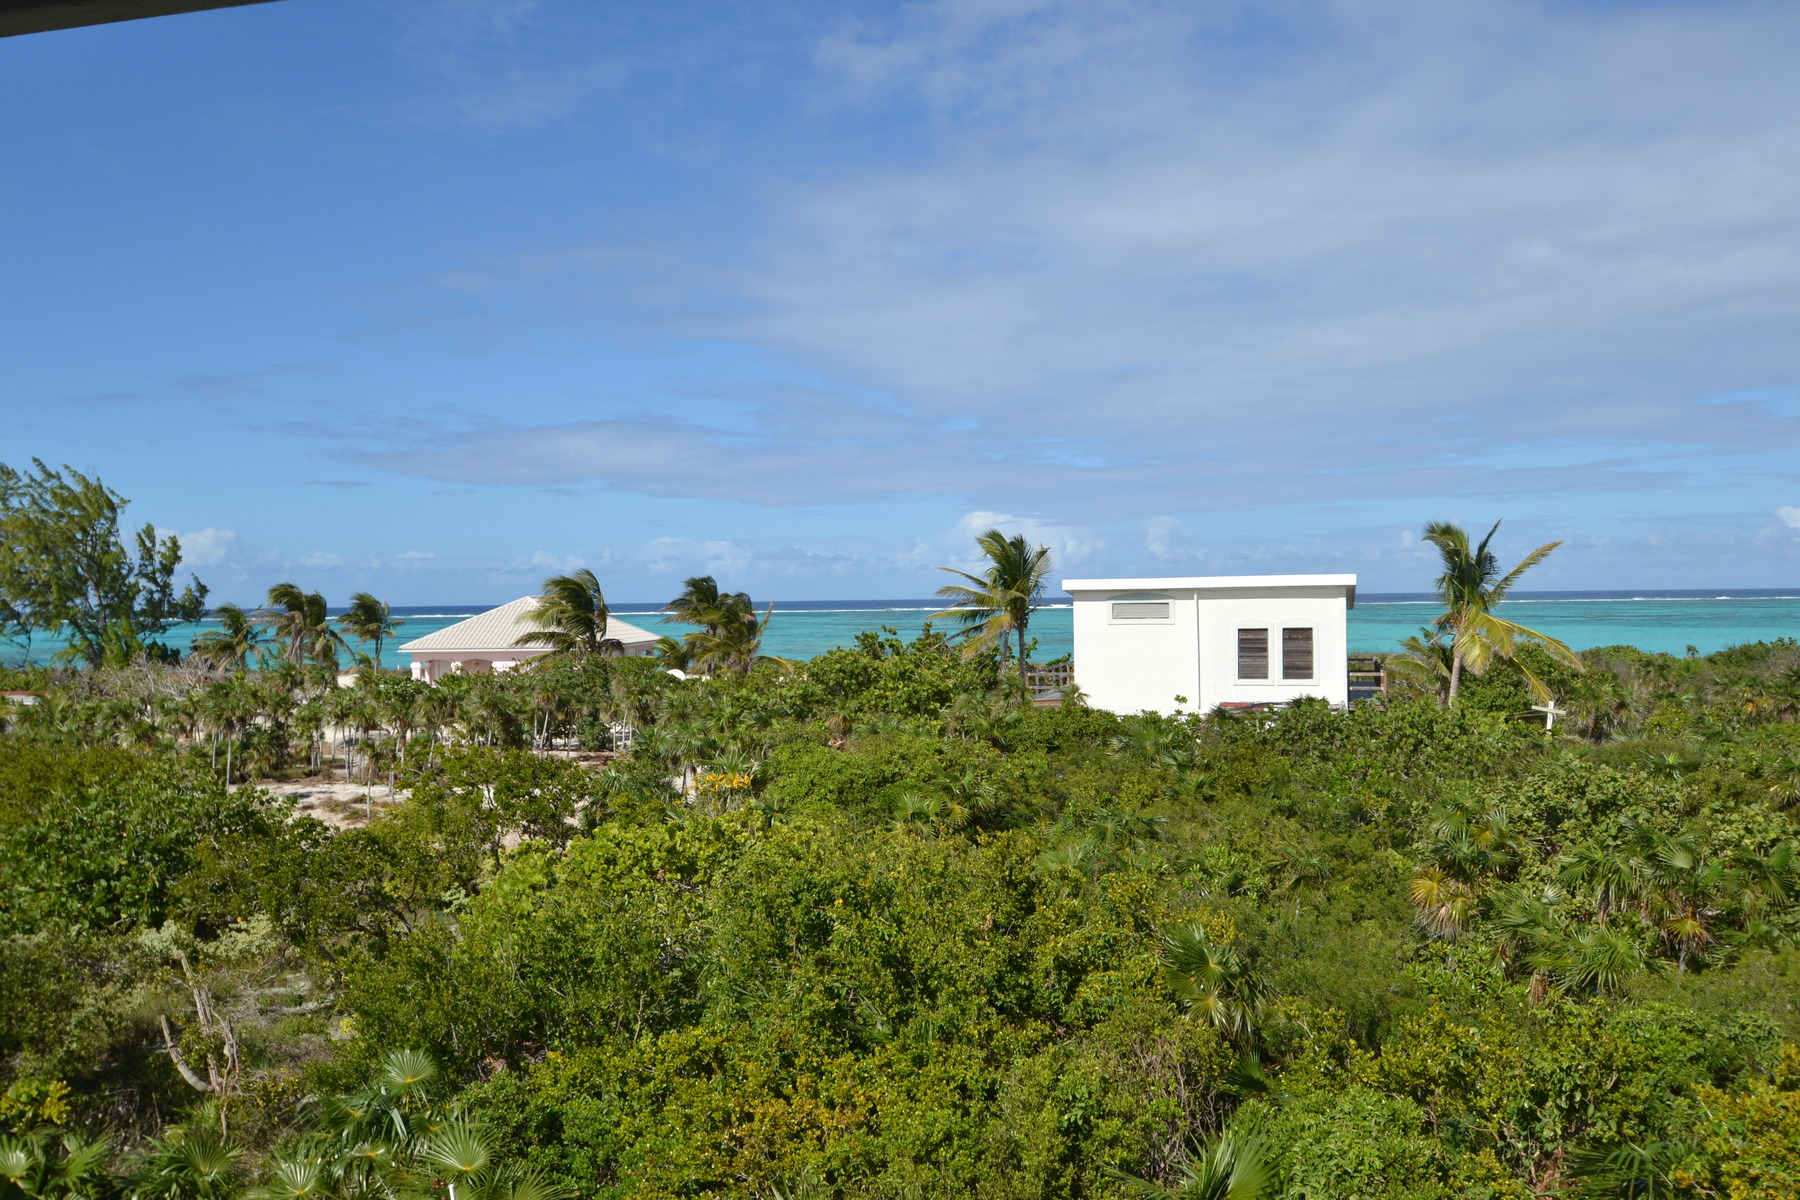 Additional photo for property listing at Ocean View Villa - Whitby Ocean View Villa Whitby, Caicos Del Norte TCI BWI Islas Turcas Y Caicos